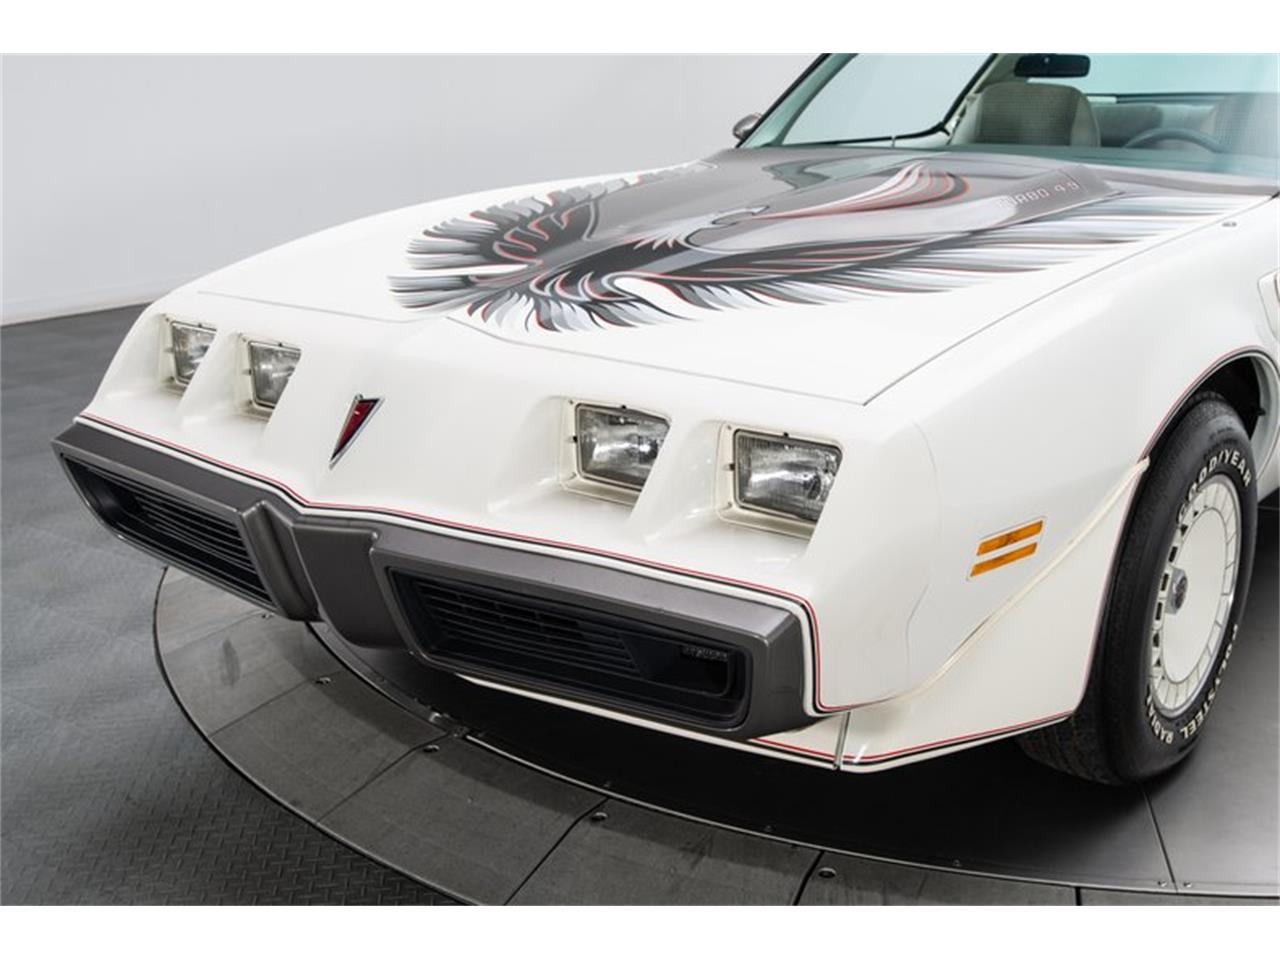 1980 Pontiac Firebird Trans Am Turbo Indy Pace Car Edition for sale in Charlotte, NC – photo 7